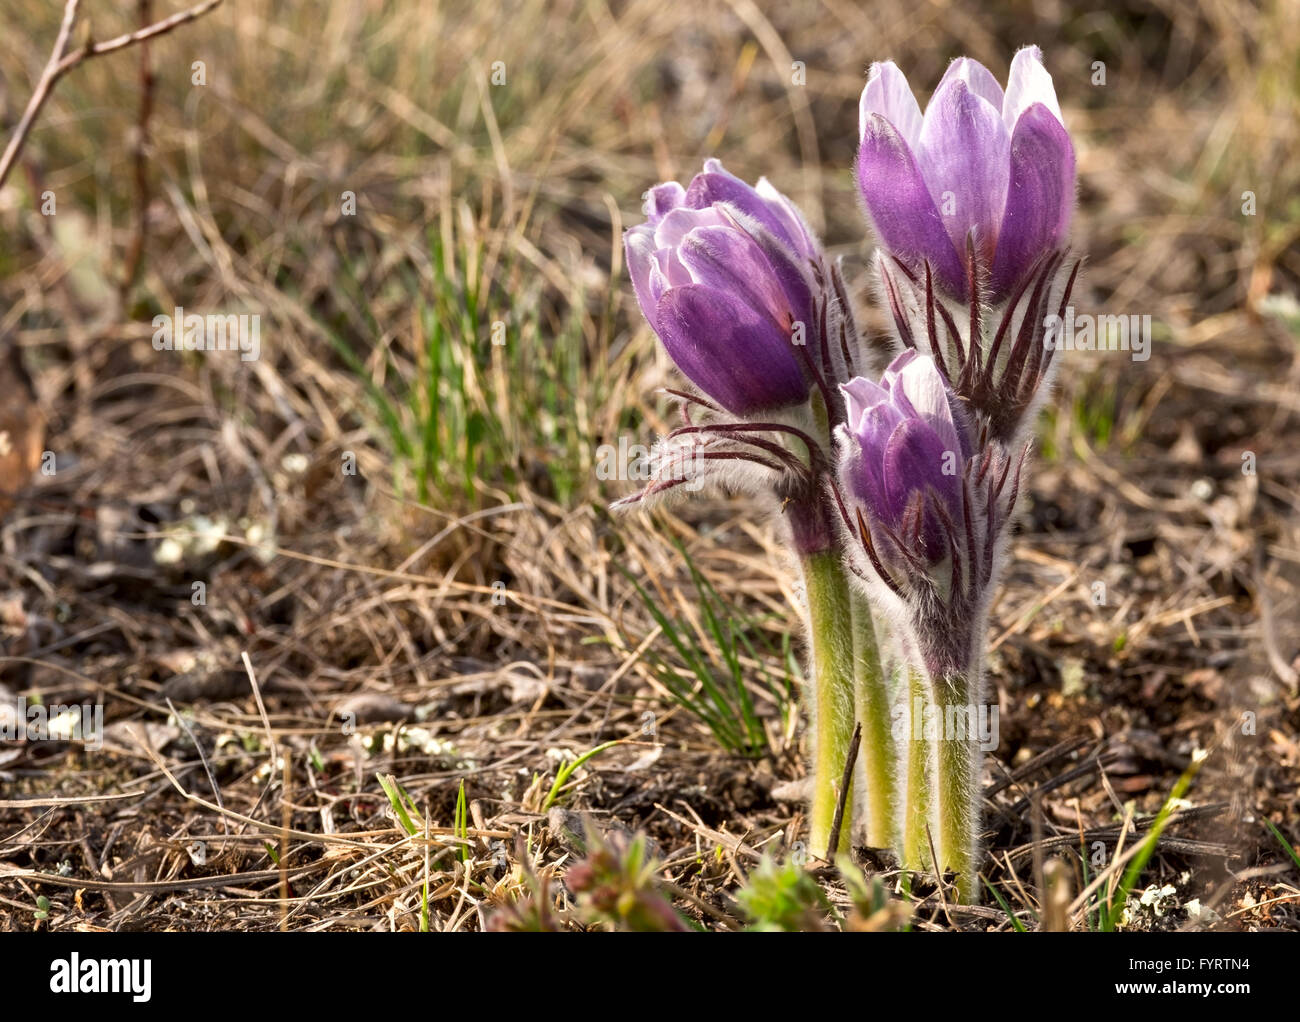 Pulsatilla patens close-up - First spring flowers - Stock Image